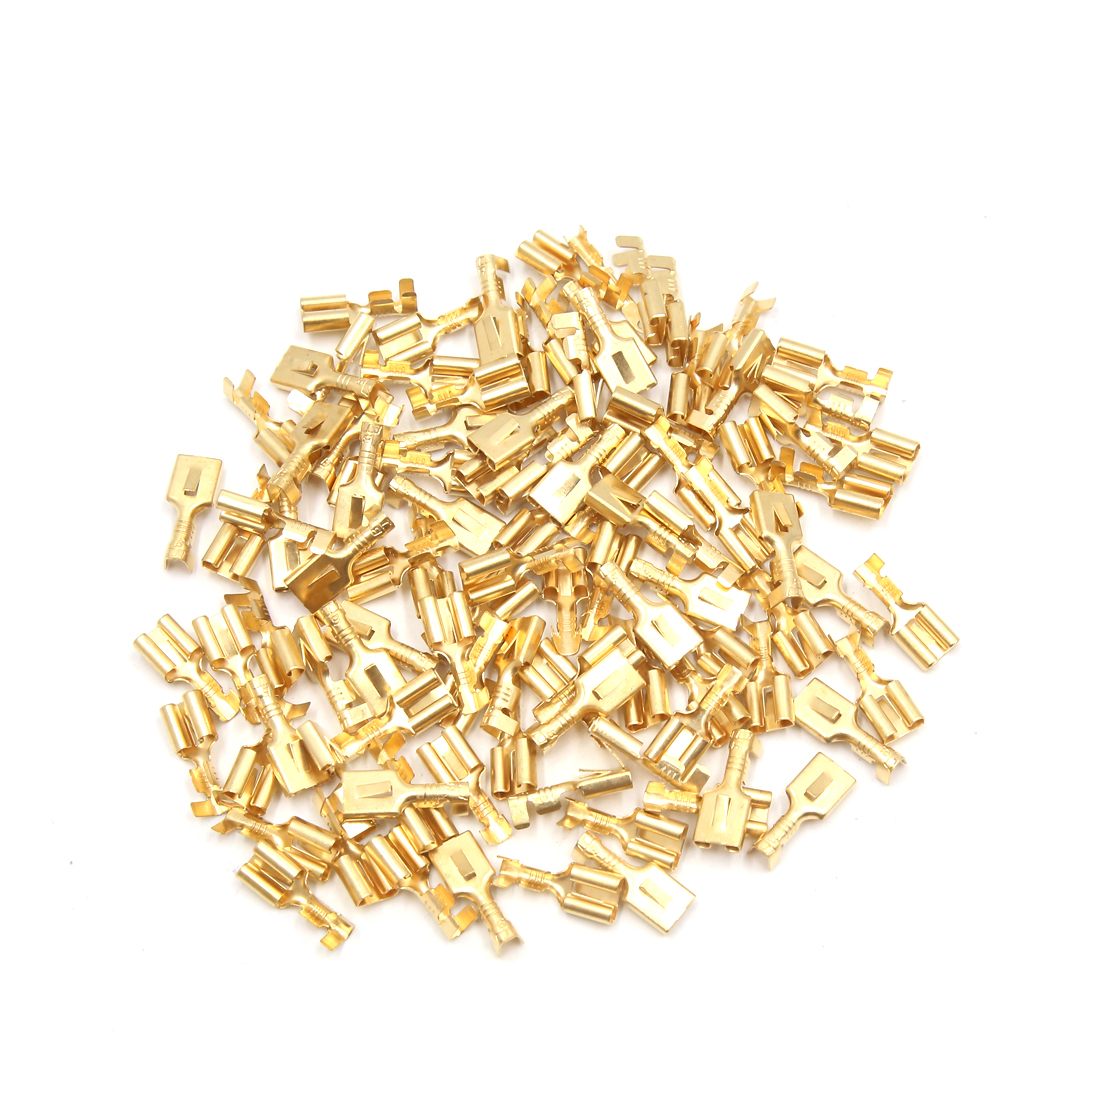 100Pcs Gold Tone Electric Wires Female Spade Connector Terminal for Car Vehicle